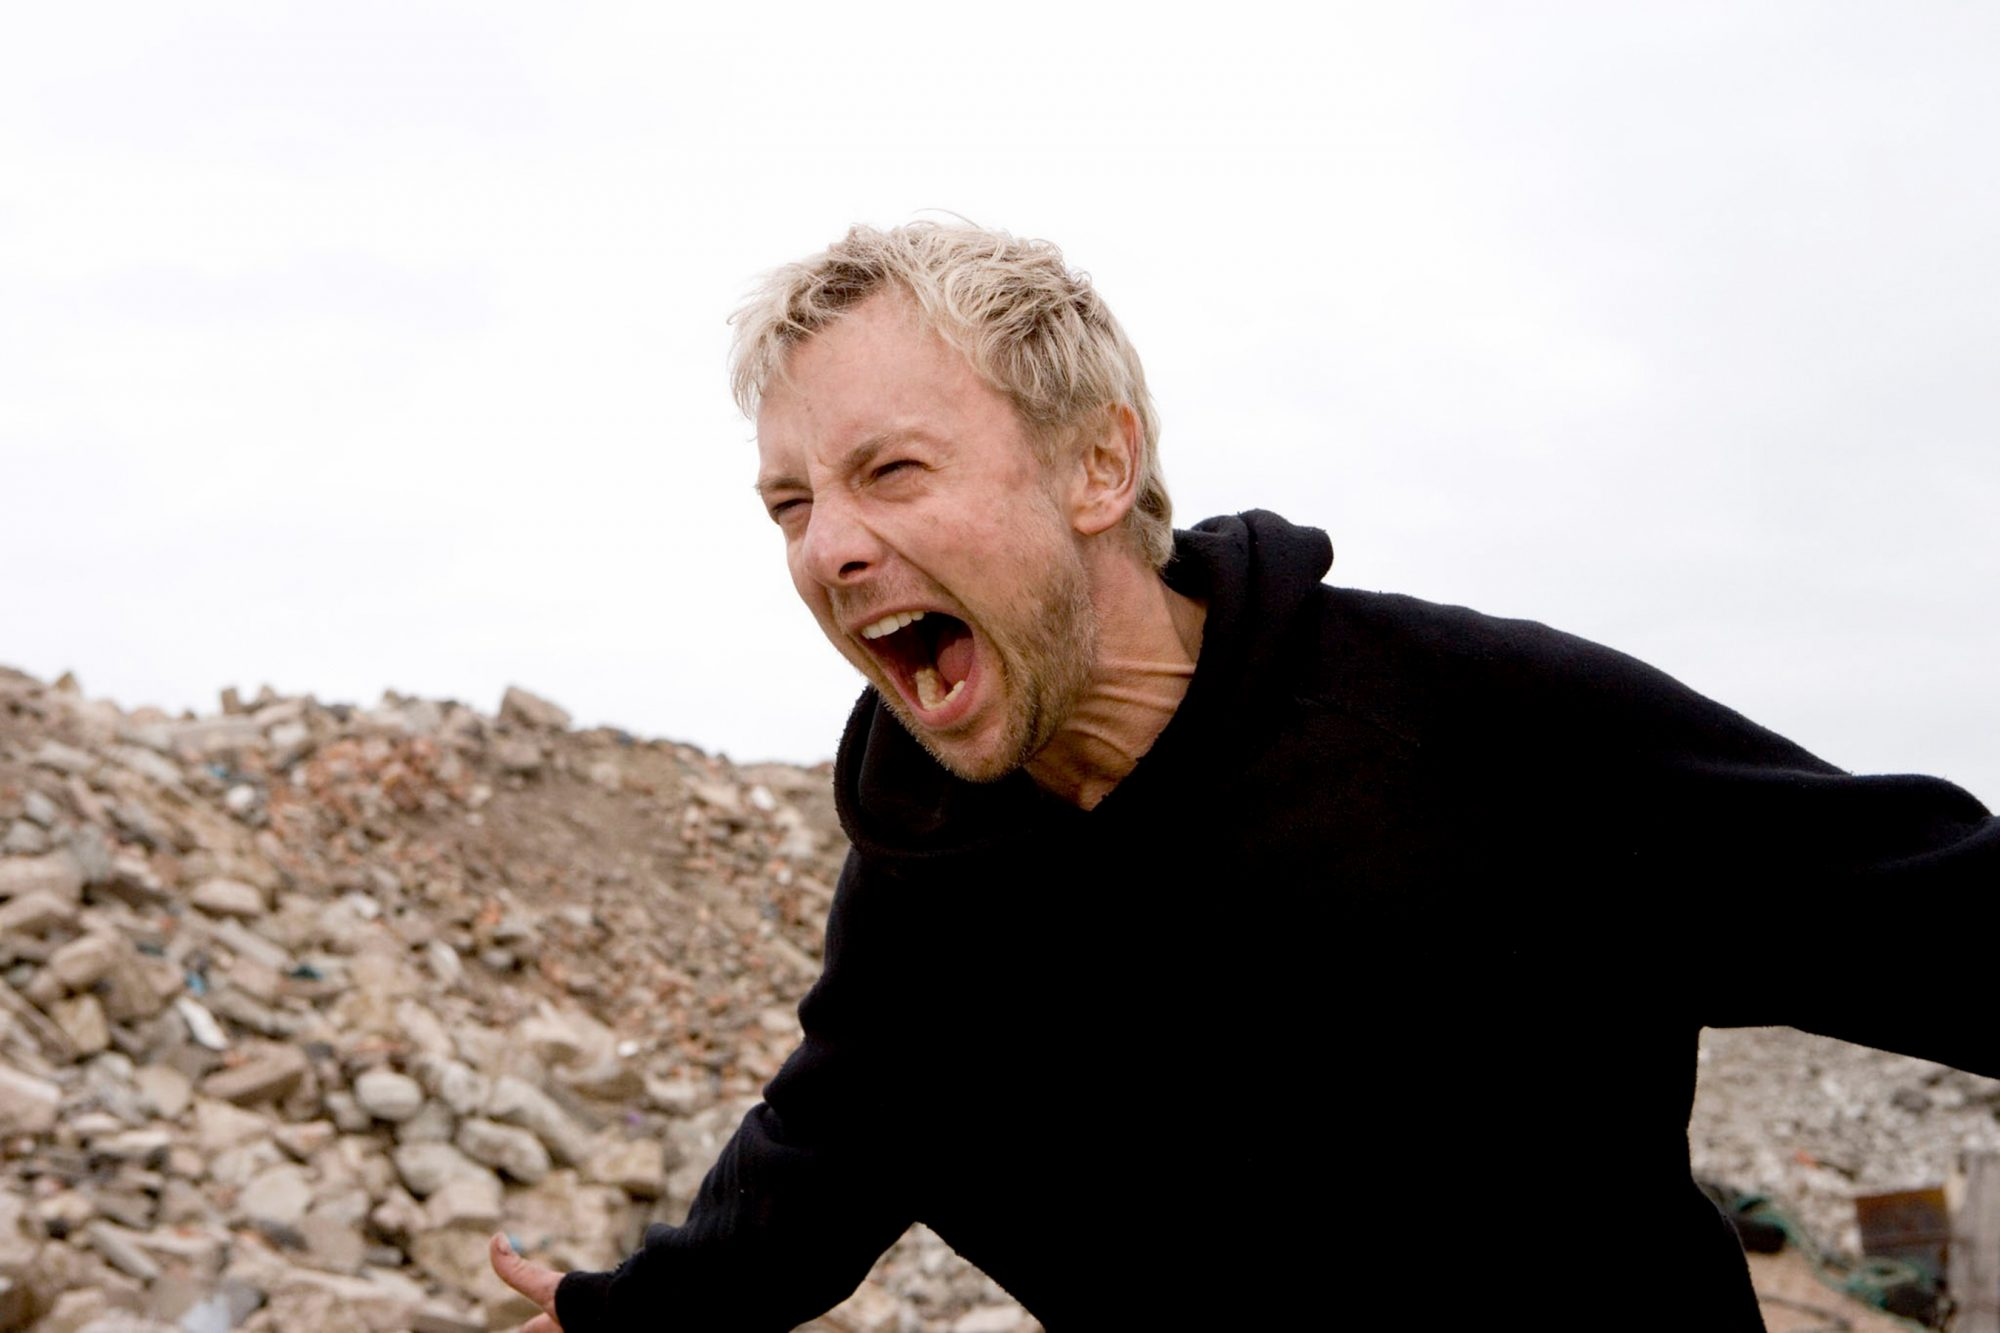 DOCTOR WHO, John Simm, 'The End of Time, Part I', (Dec. 26, 2009). photo: Adrian Rogers / ©BBC /